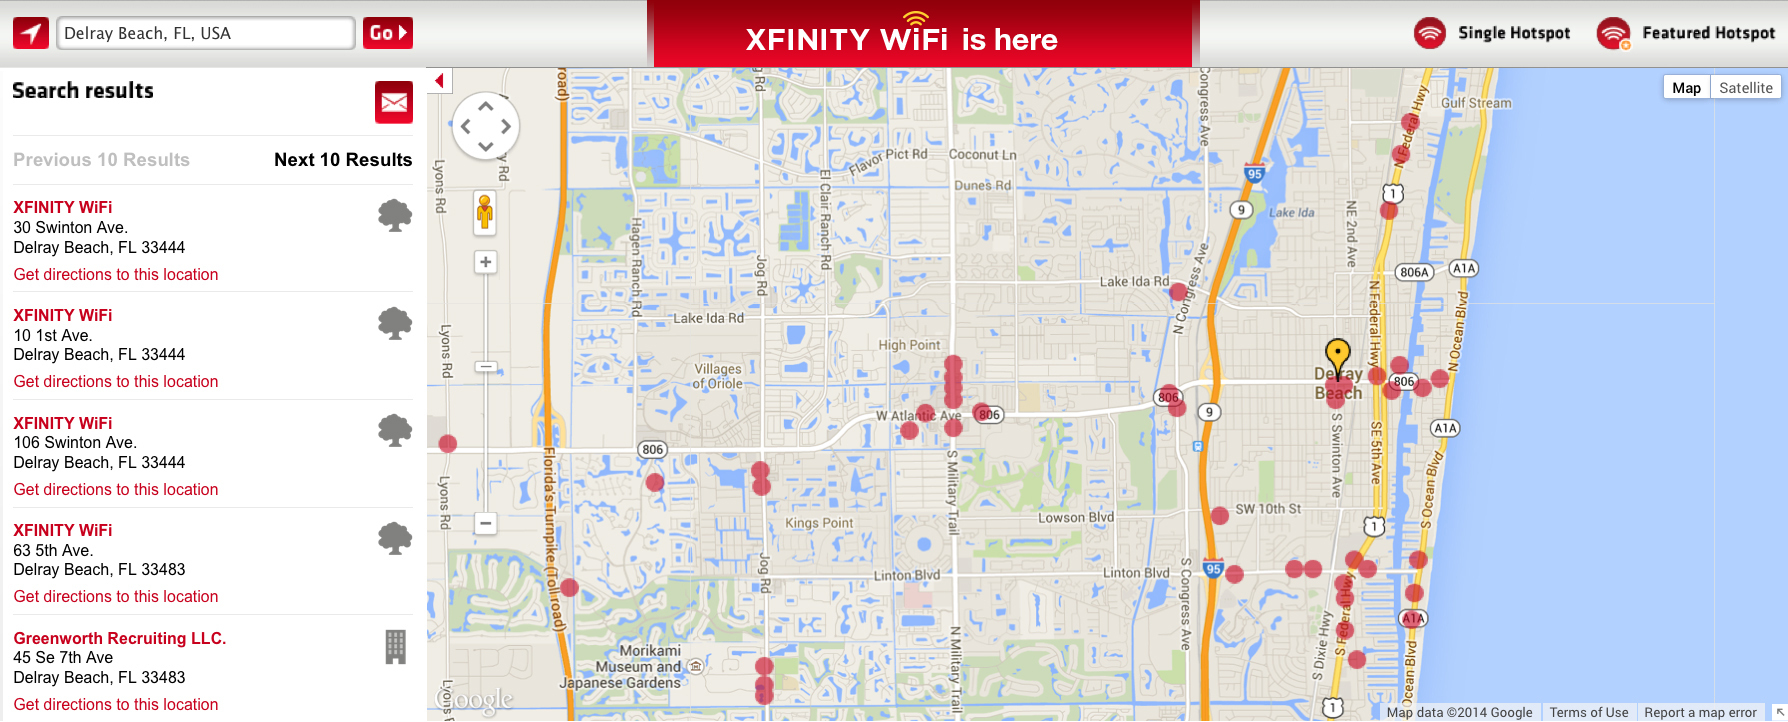 Comcast Turns on Xfinity WiFi Hotspots in Florida Business Wire